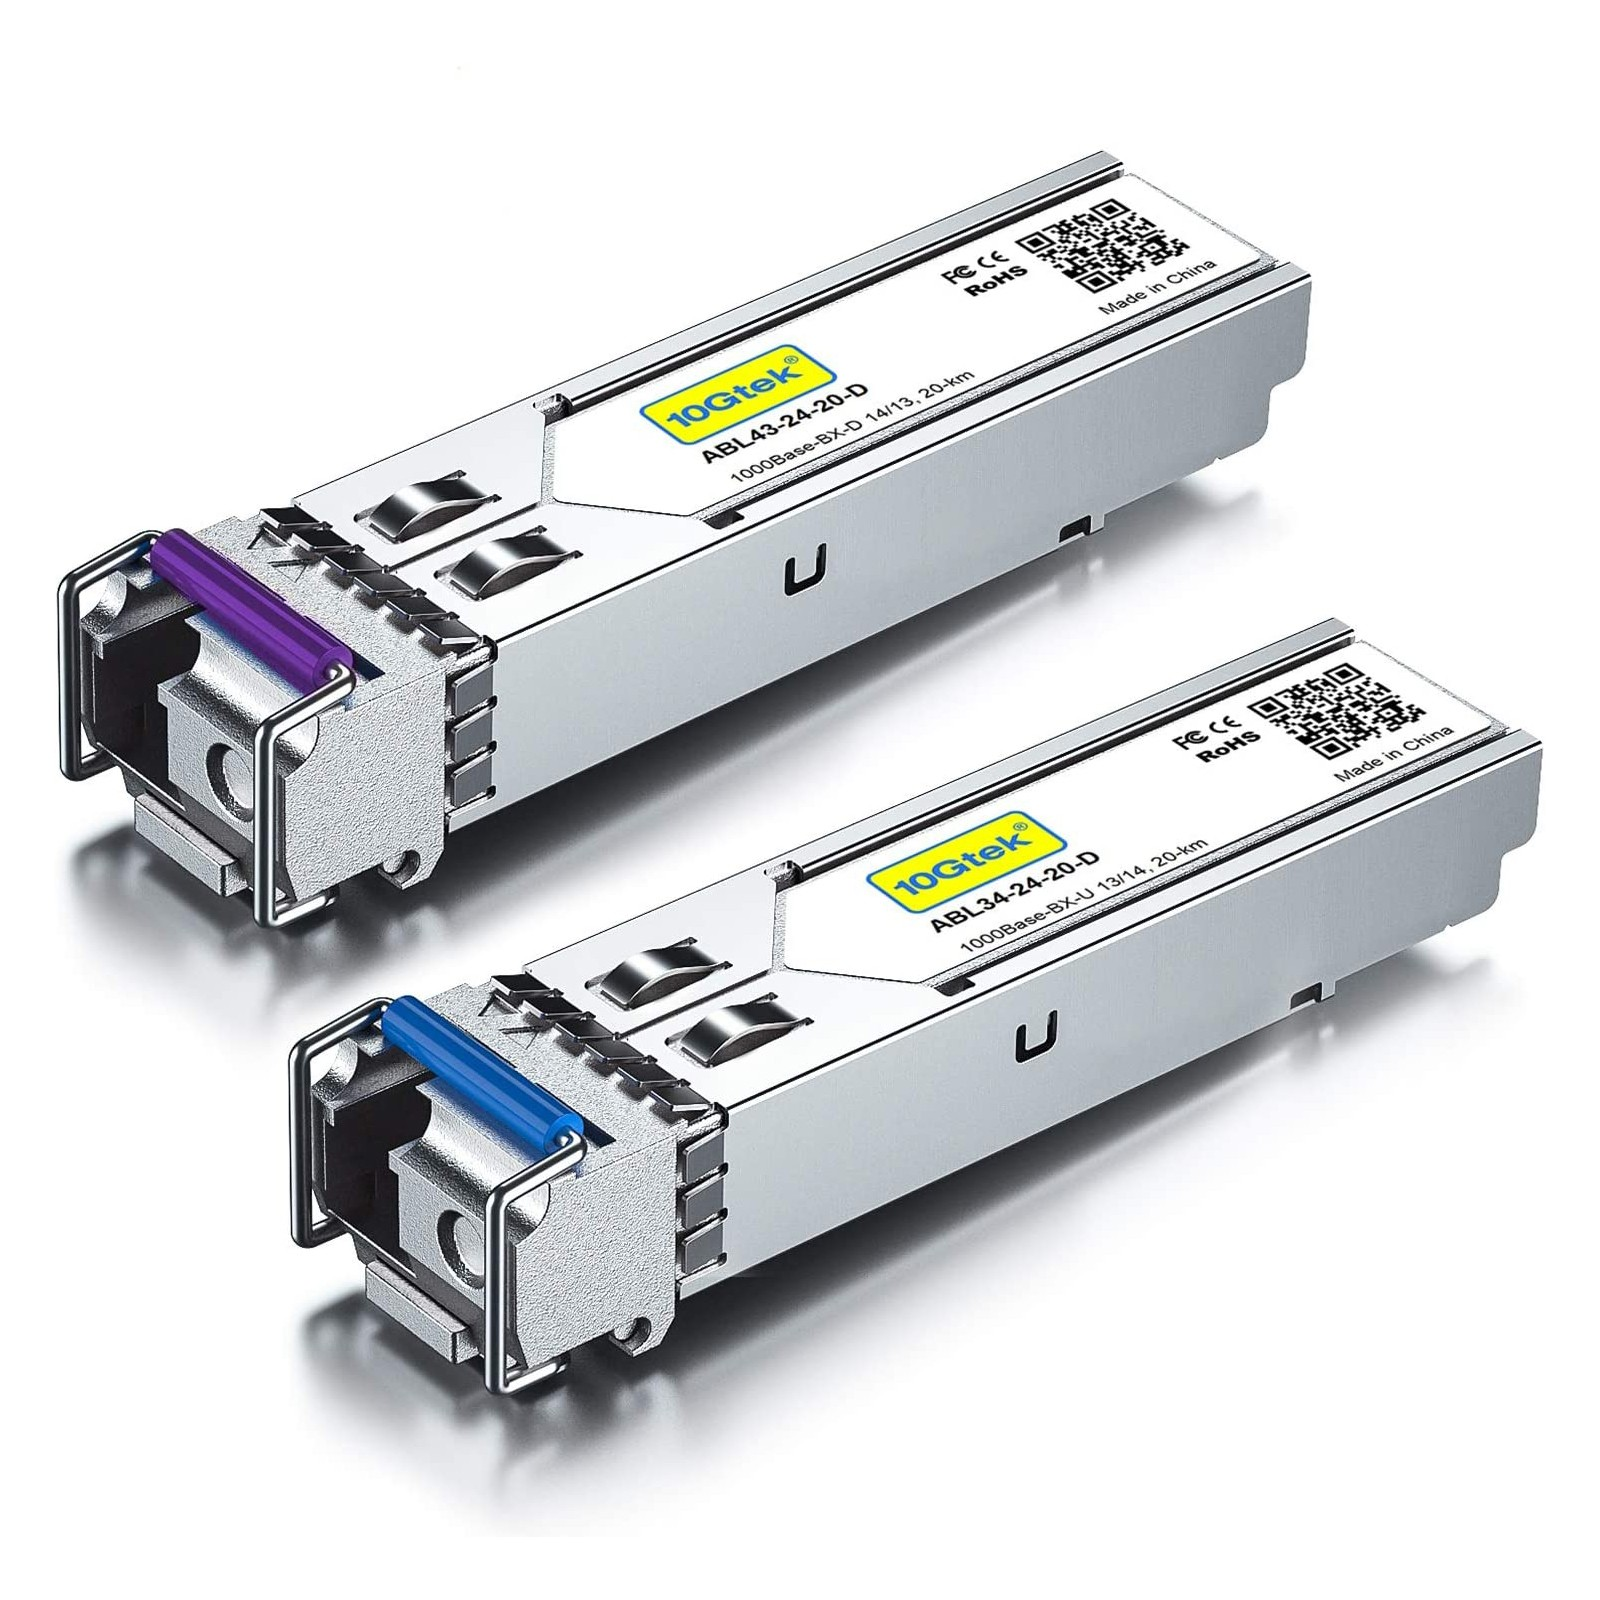 A Pair of 1.25G SFP Bidi Transceiver, 20km Compatible for Alcatel-lucent